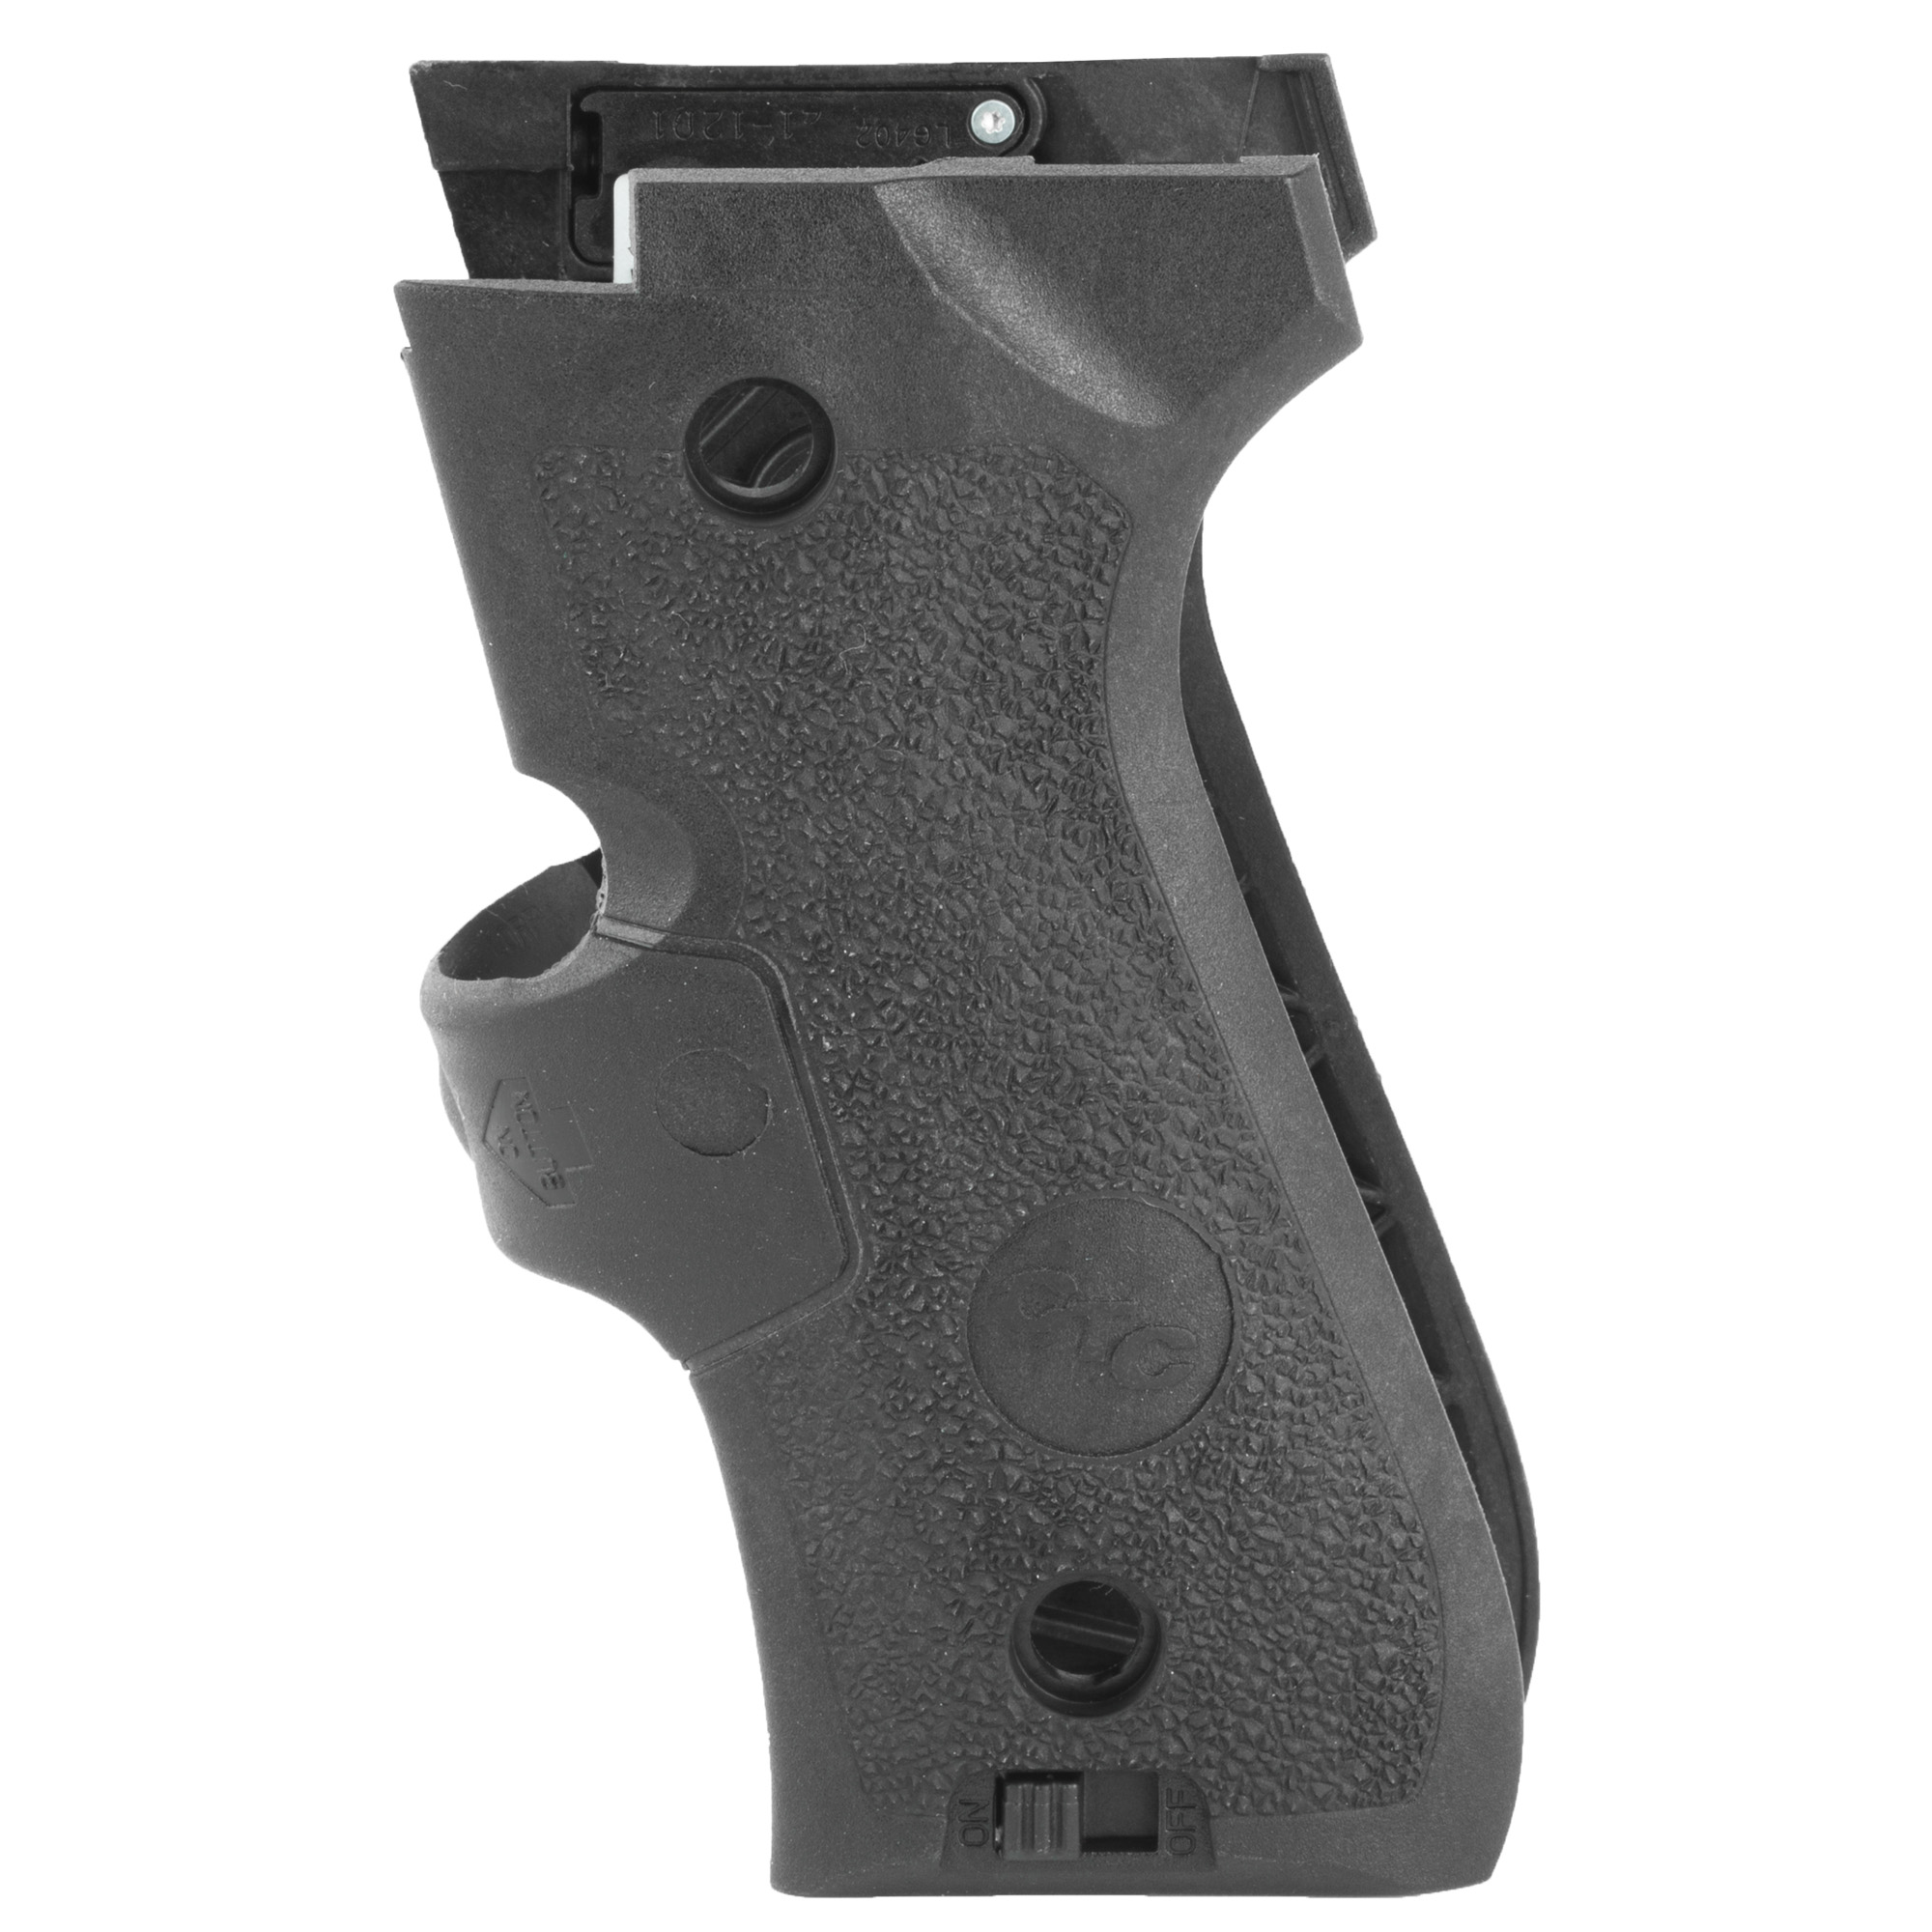 """LG-402M laser sights for Beretta 92"""" 92-A1"""" 96 and M9 are designed specifically for the demands of military* use. This model exceeds MIL-STD-810F standards for waterproofing"""" dust/salt/fog resistance and high/low temperature operation. Compared to our standard LG-302 Lasergrips(R) for Beretta"""" this model features a more prominent rubber-overmolded front activation switch and aggressive textured side-panels"""" which are designed for maximum control with or without gloves. Under extreme testing"""" the LG-402M worked flawlessly under adverse conditions"""" providing instinctive activation and fast"""" accurate target acquisition."""